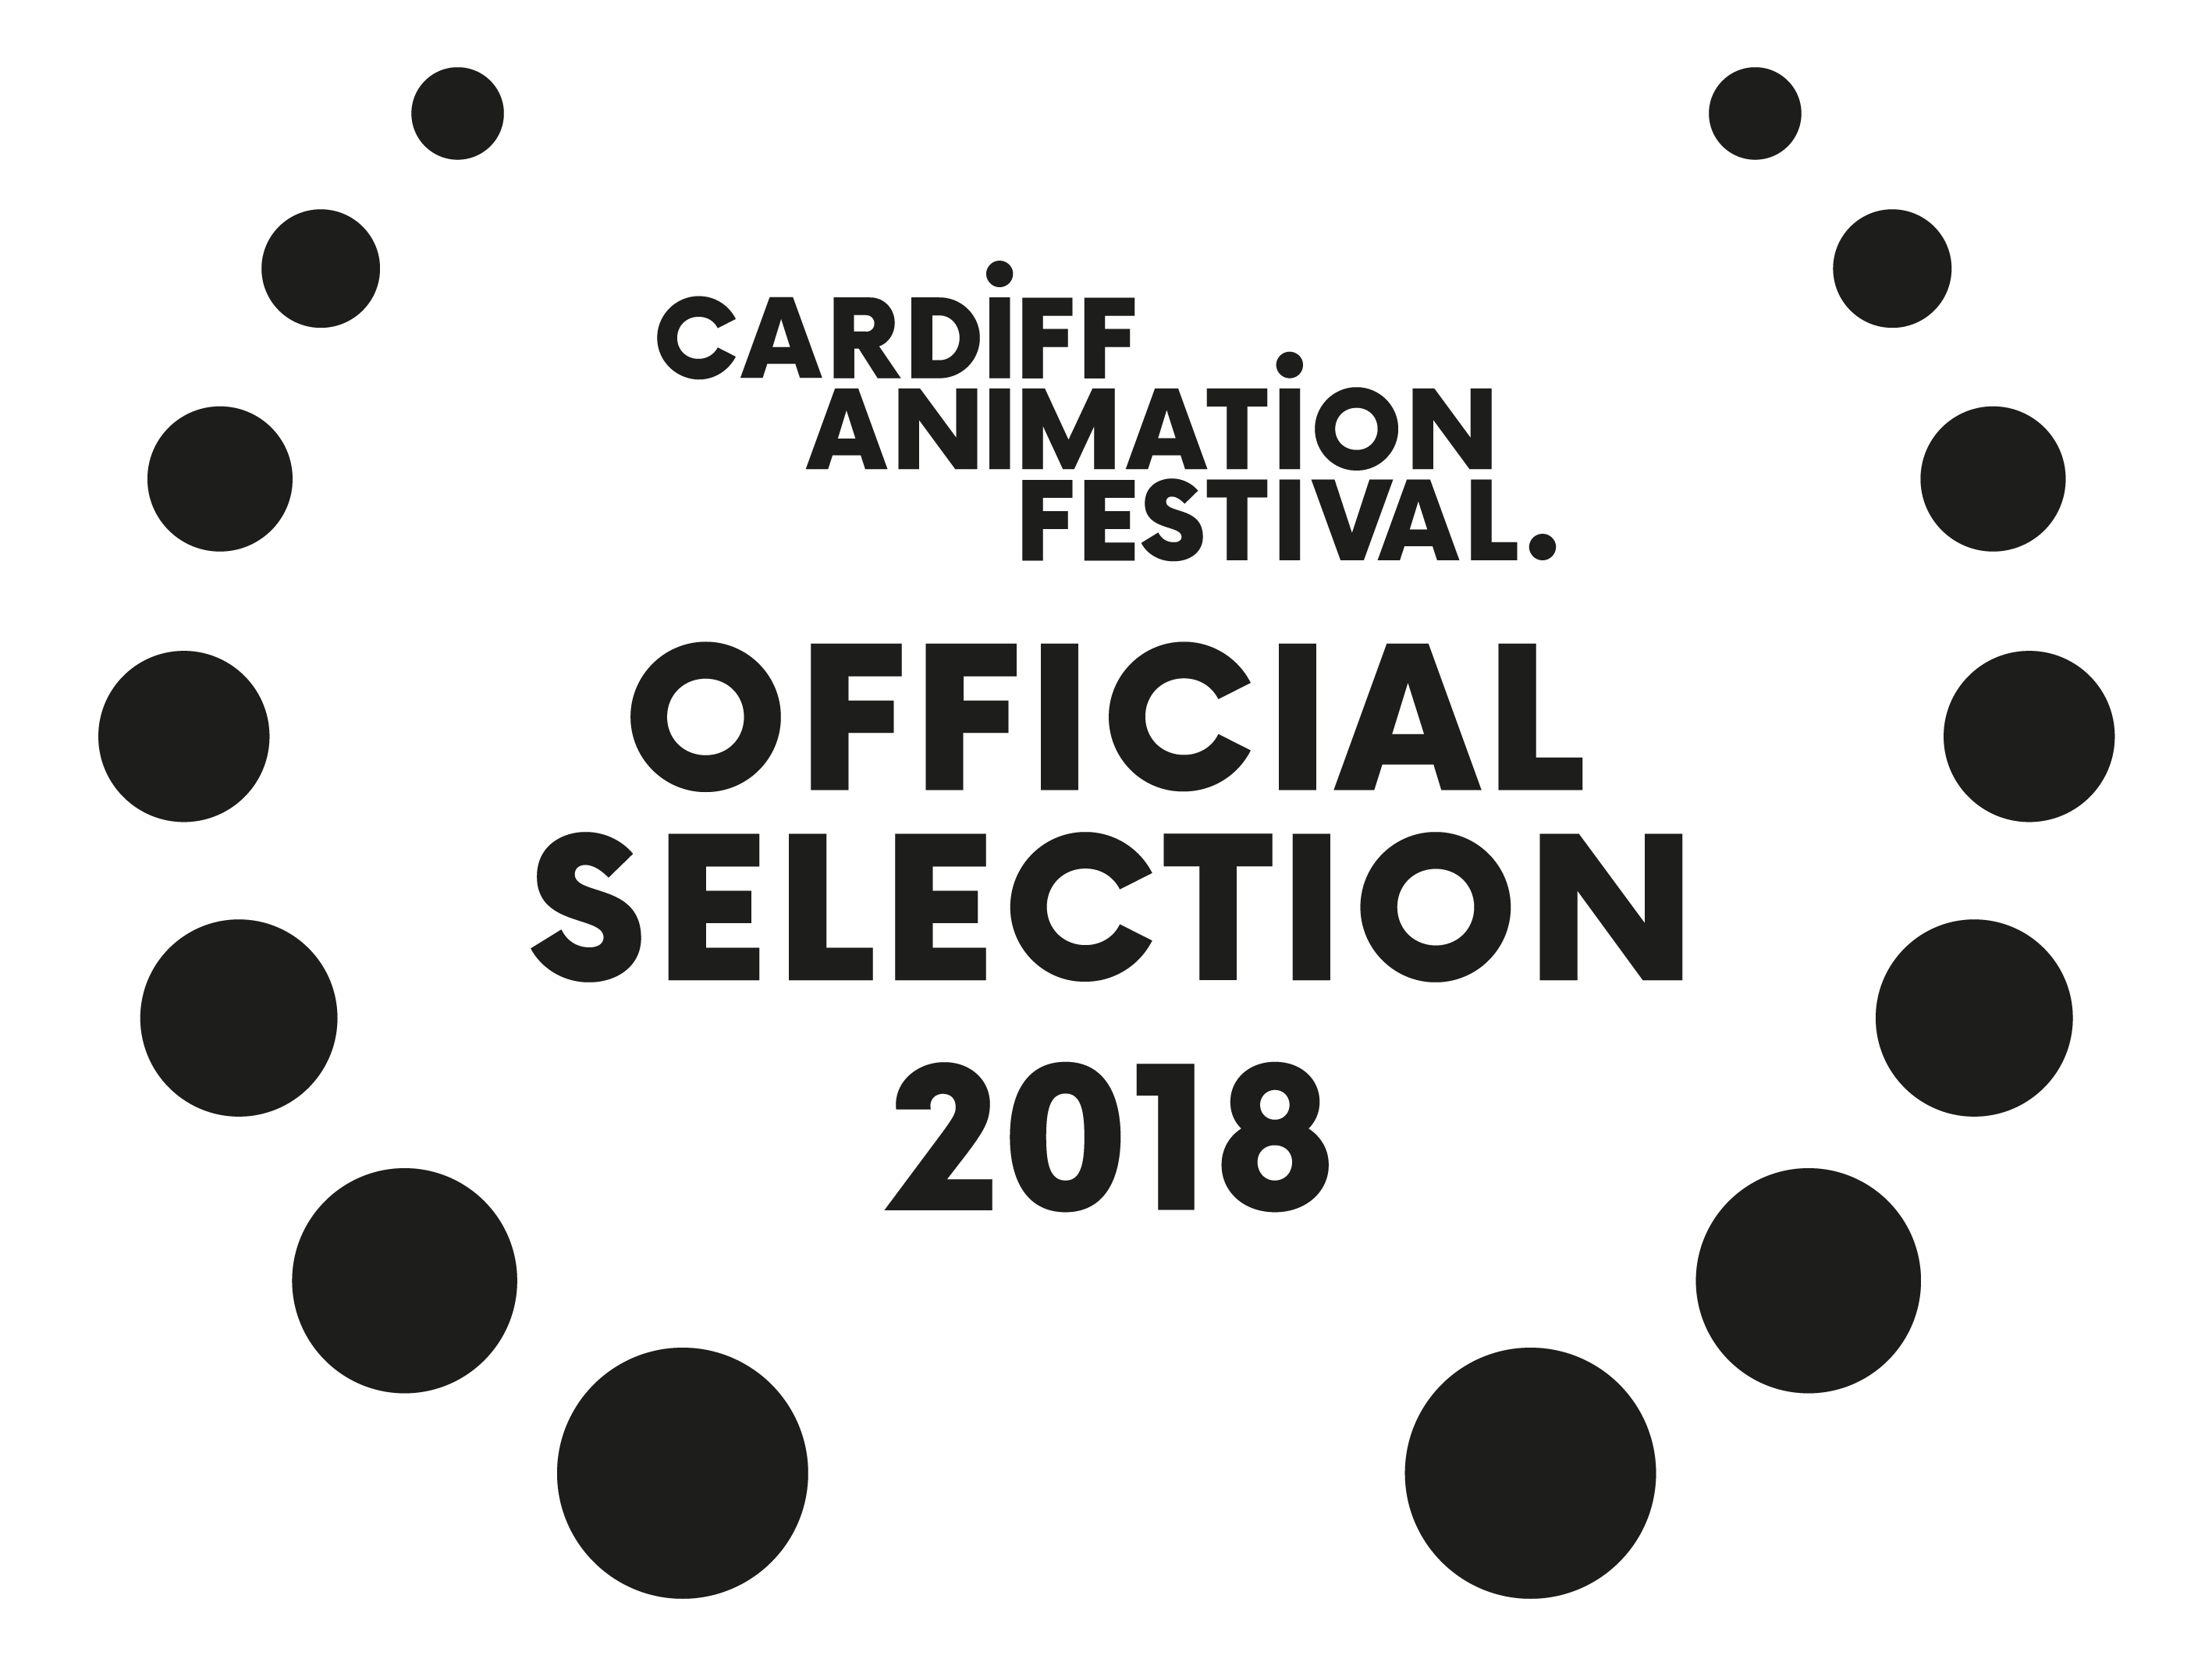 c/cardiff_Official_Selection_black